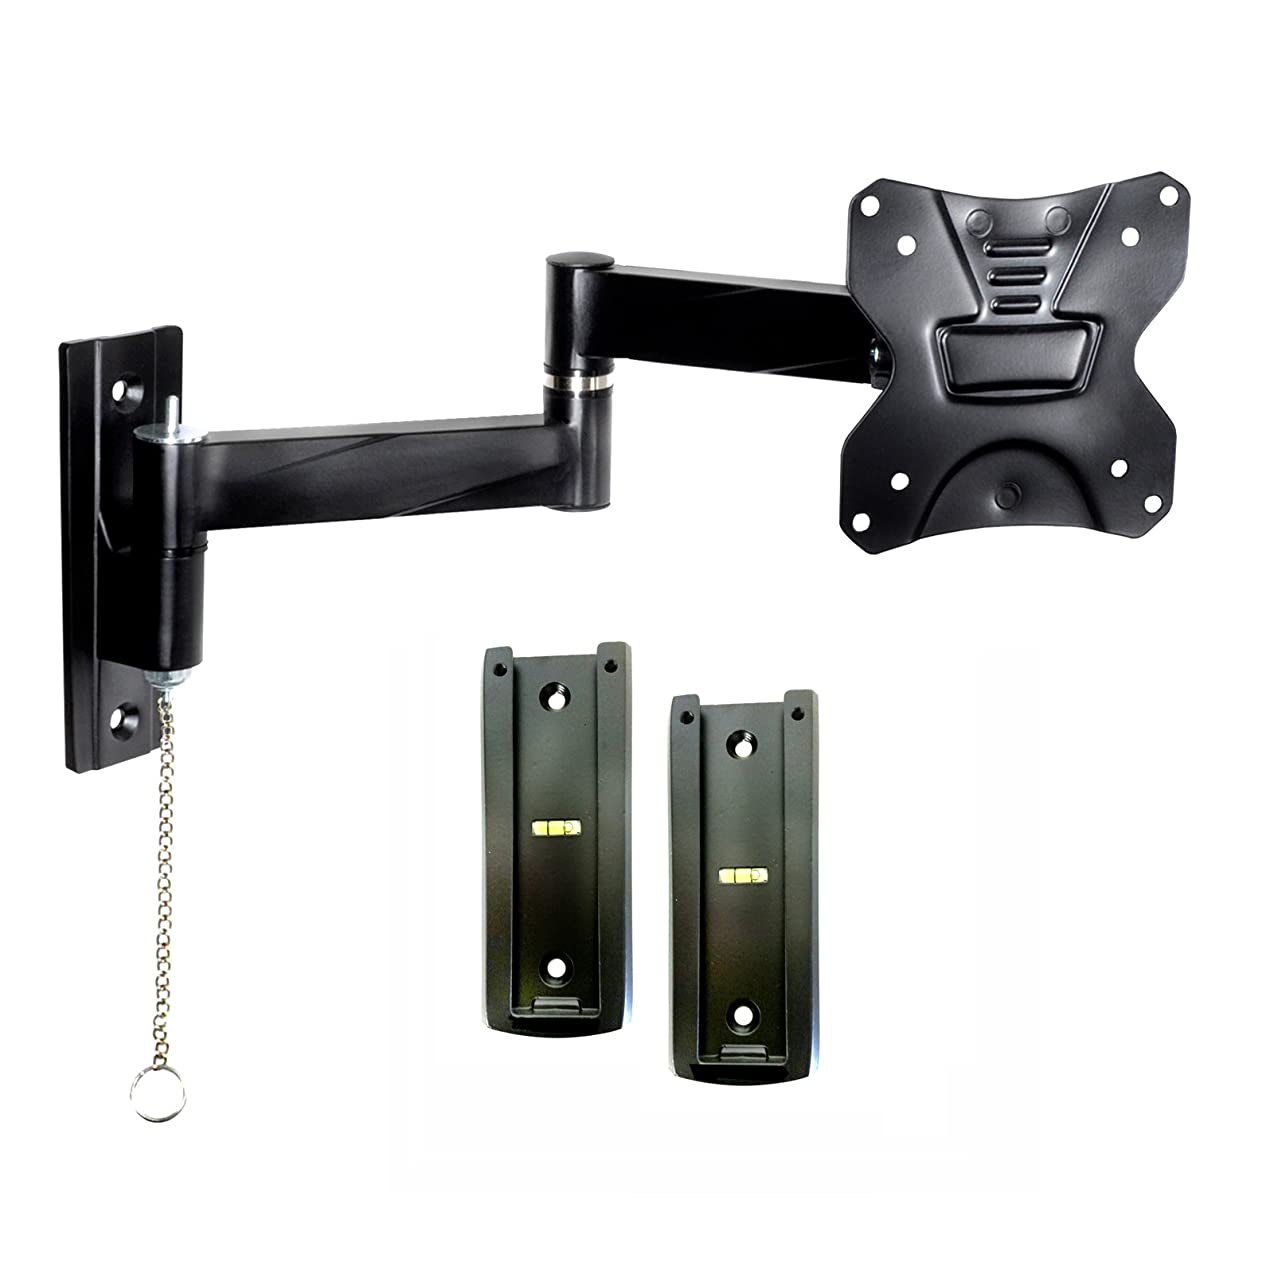 Master Mounts 2311L-2 Portable Travel RV TV Mount Locking Articulating Arm Allows 1 TV to be Used in 2 Locations, Keeps TV Secure in Moving Vehicles up to VESA 100x100 dexzbldmfrxo6306